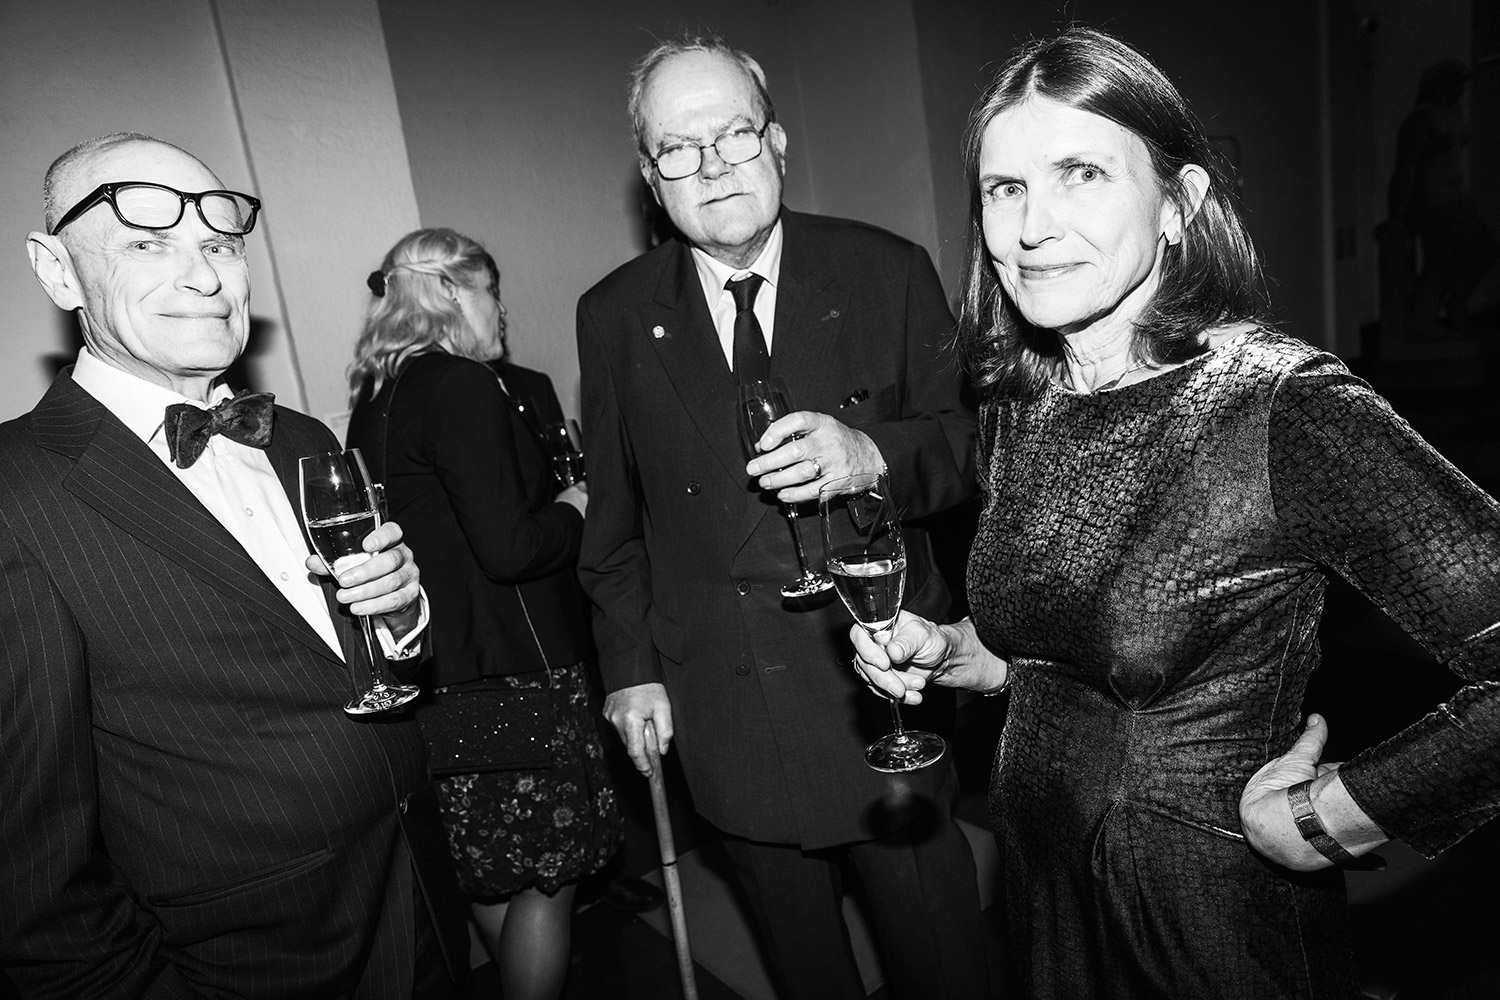 Kenneth Hermele, Tomas Söderberg & Ingrid Elam. Photo: Emma Svensson/Hasselblad Foundation